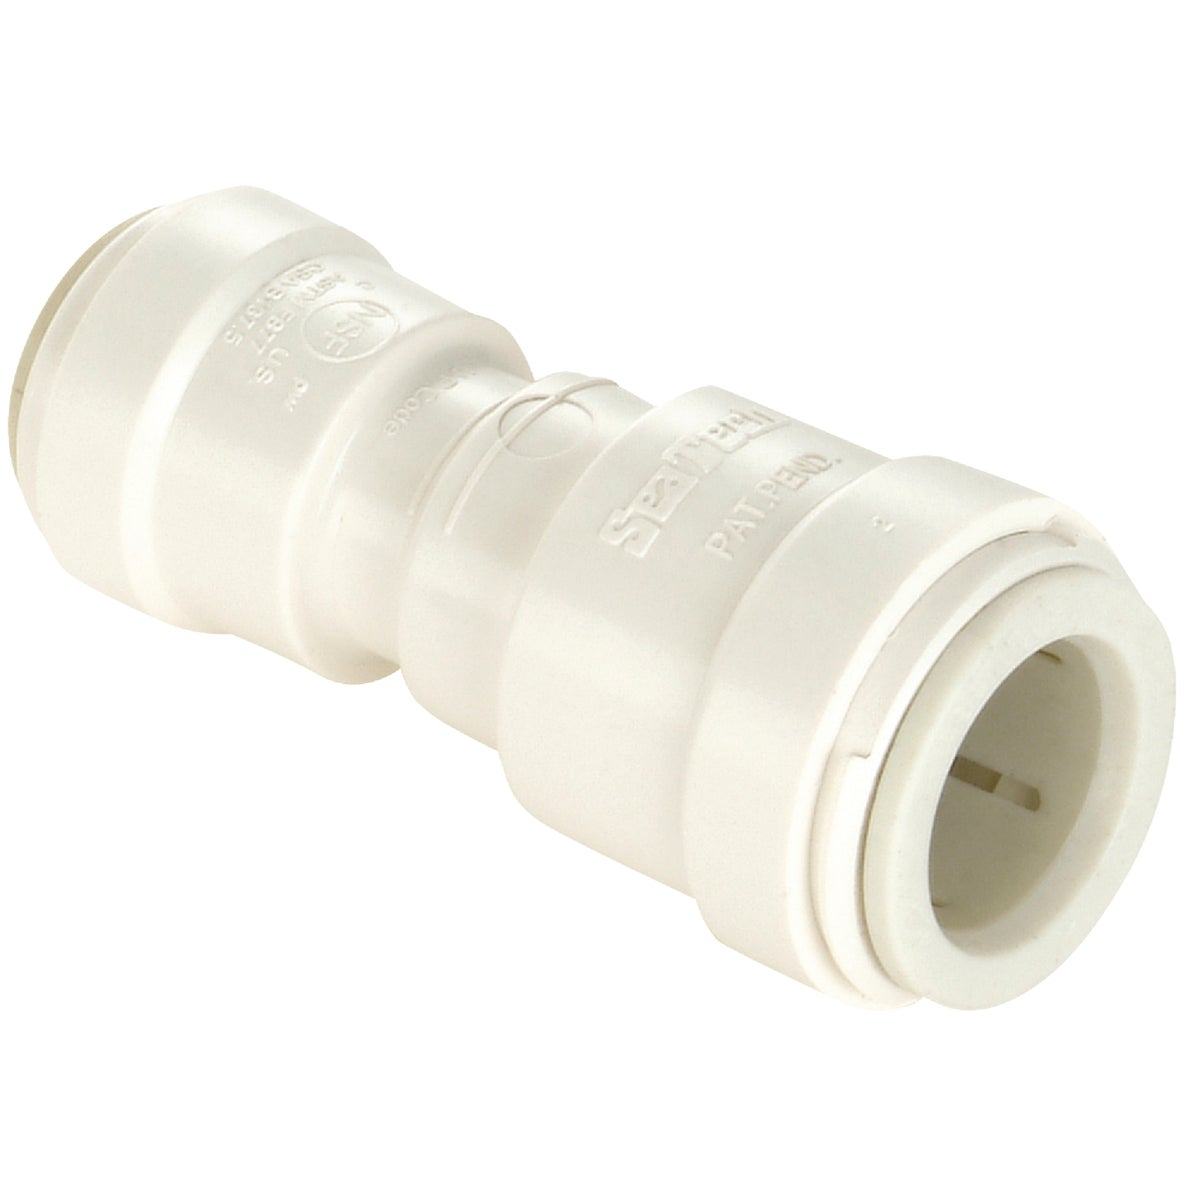 "1/2X3/8""CTS Q/C COUPLING - P-602 by Watts Pex"